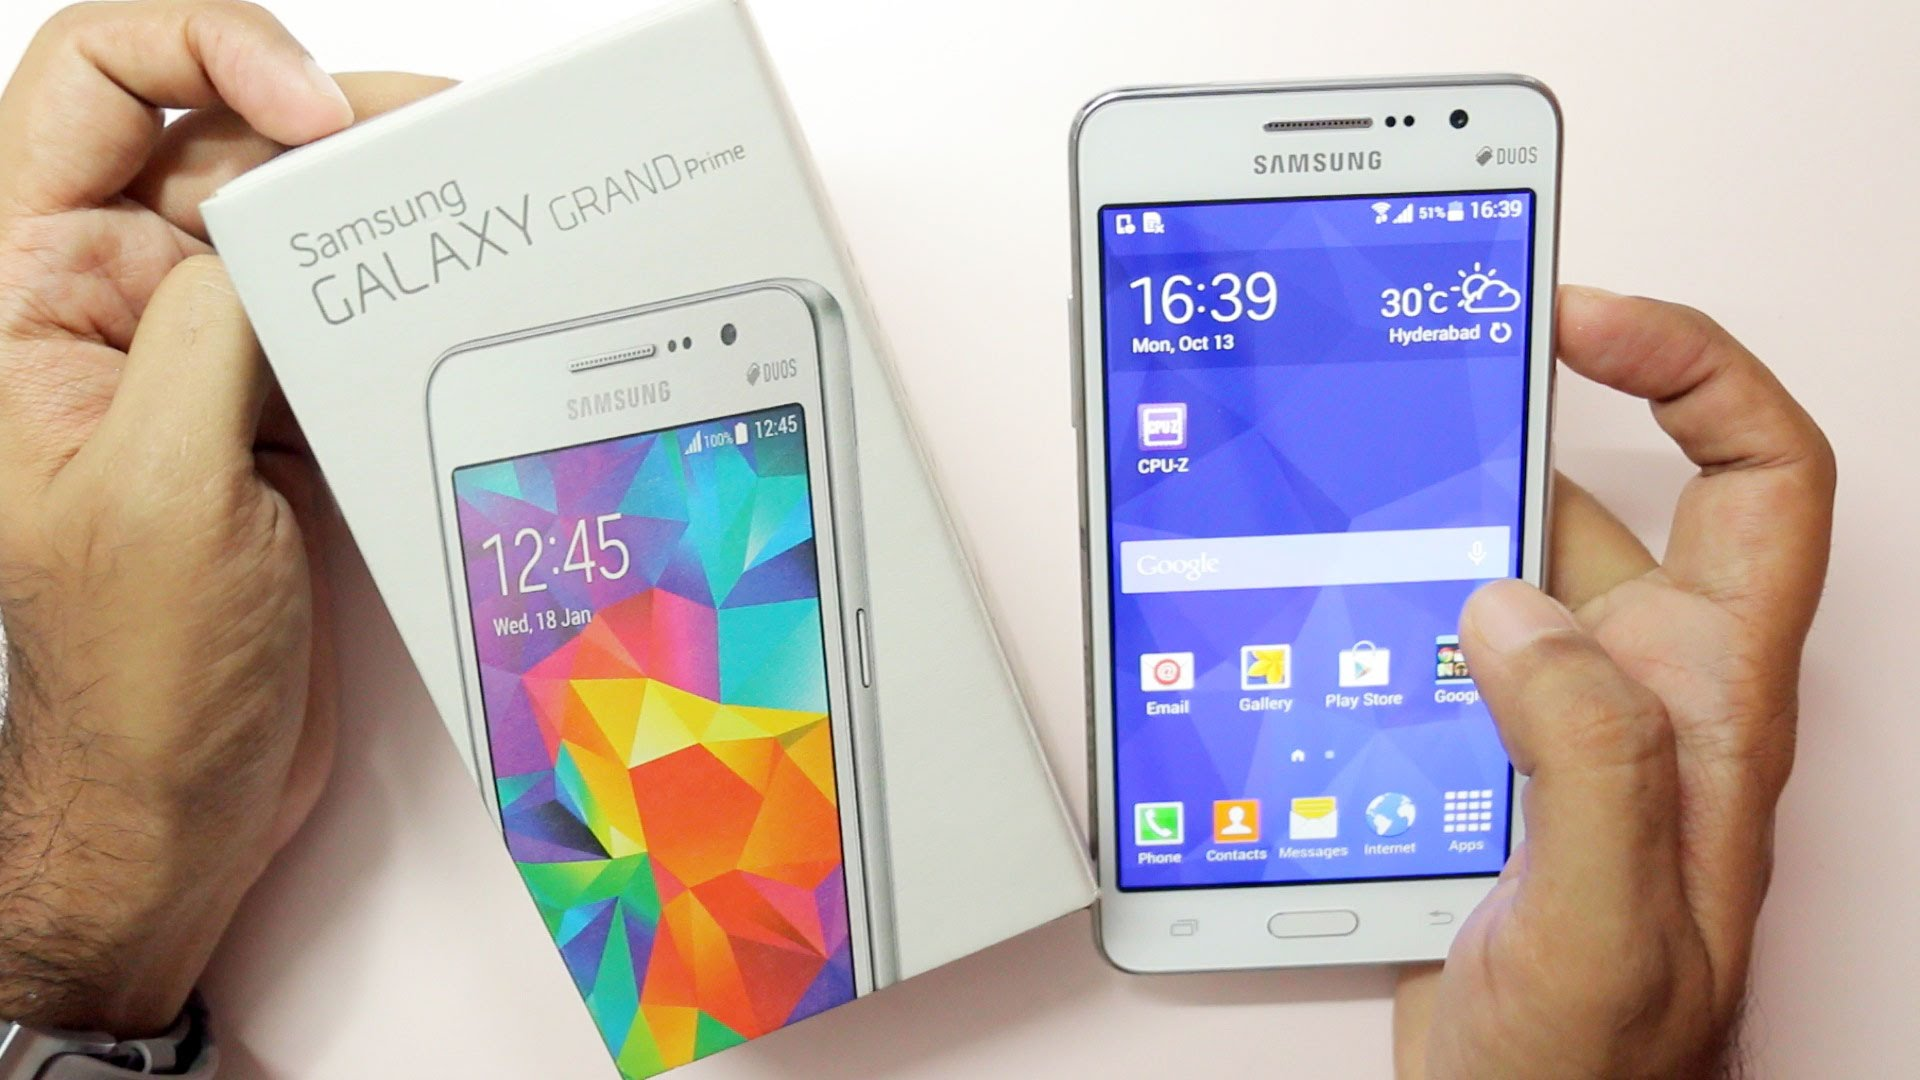 Samsung Galaxy Grand Prime Value, Samsung Galaxy Grand Prime Value fiyat